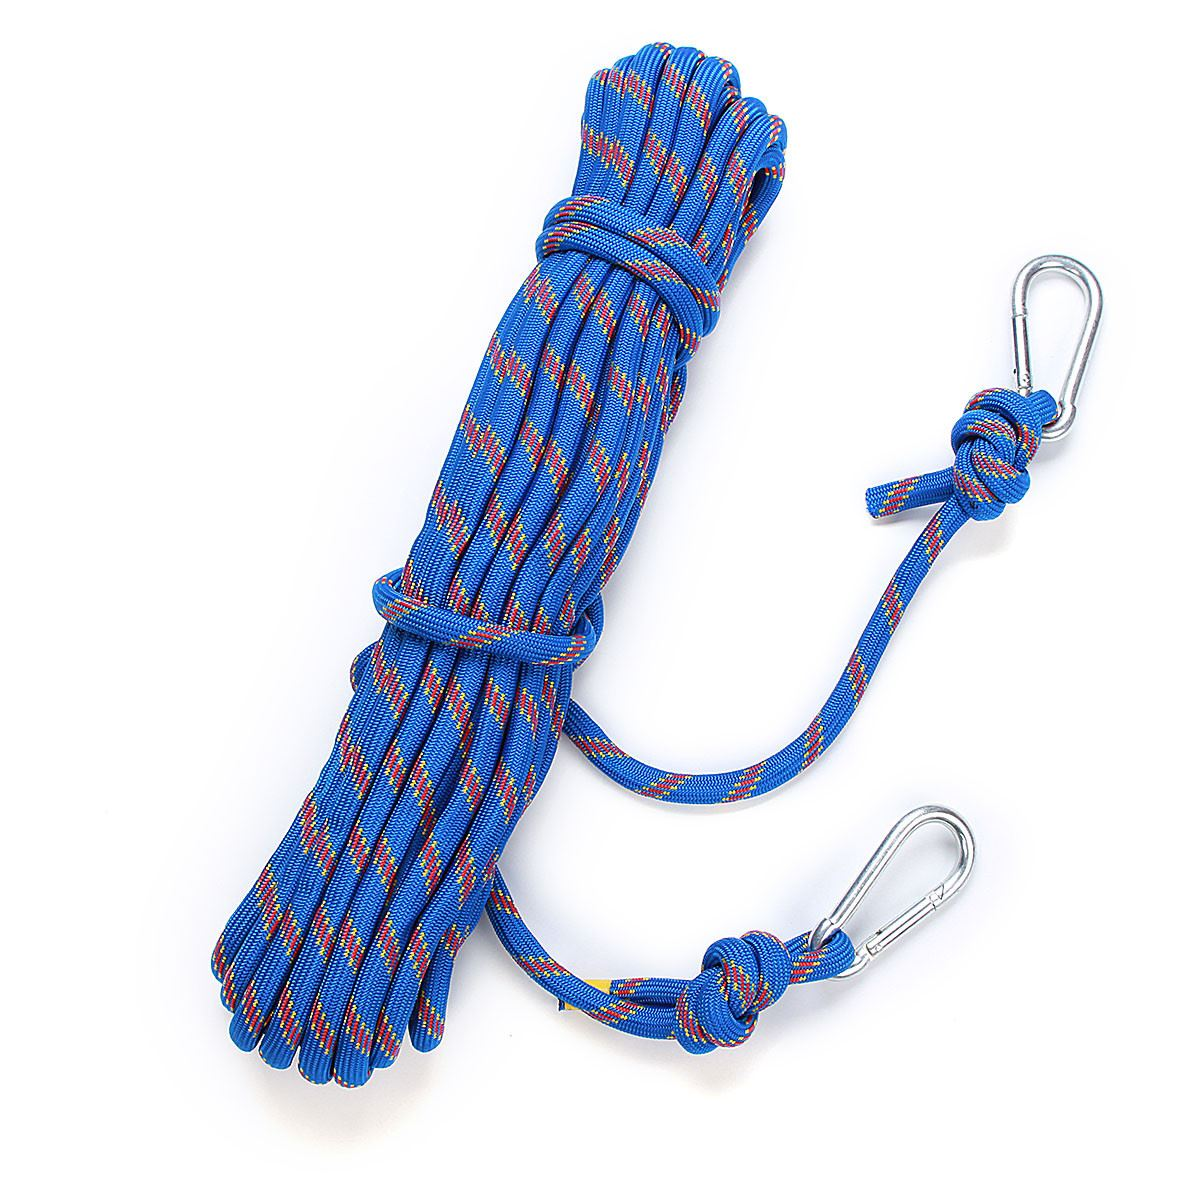 15M Outdoor Survival Paracord Climbing Rope Cord String Safety Lifeline 3KN Professional Climbing Safety Rope Rescue kits hinda family lifeline 10mm wire rope core fire protection safety rope escape rope down device